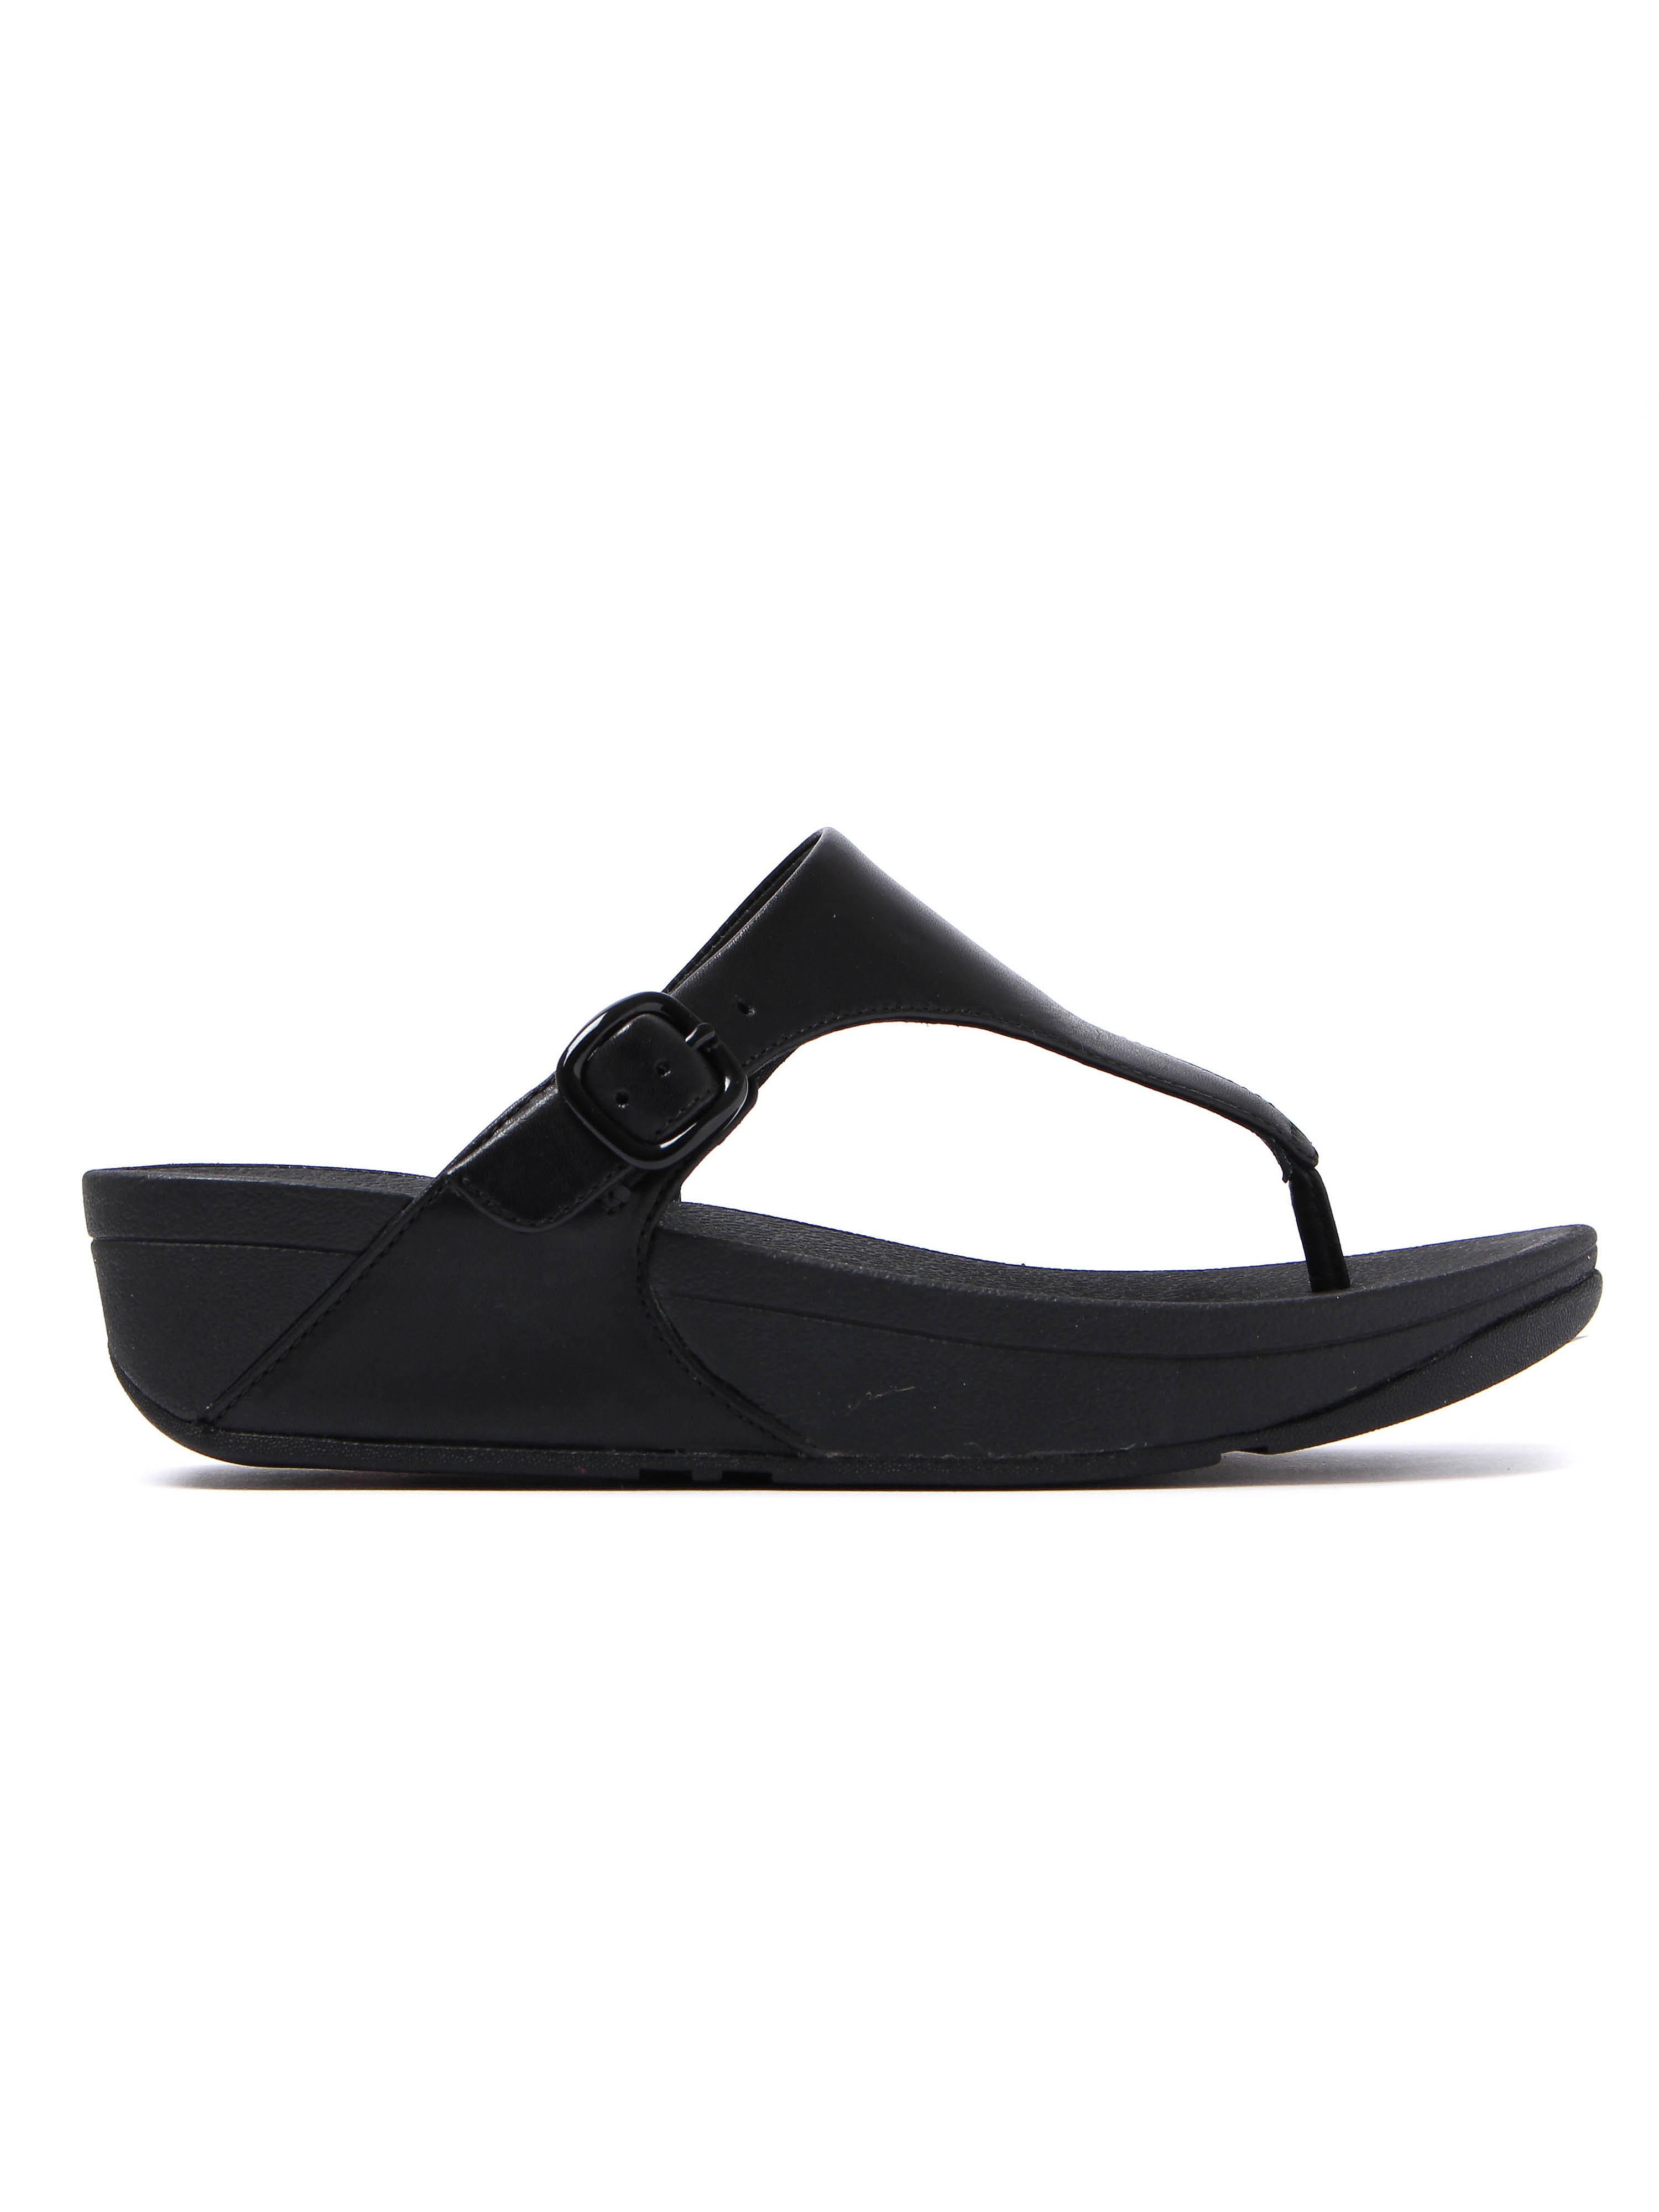 FitFlop Women's The Skinny Toe-Post Sandals - Black Leather